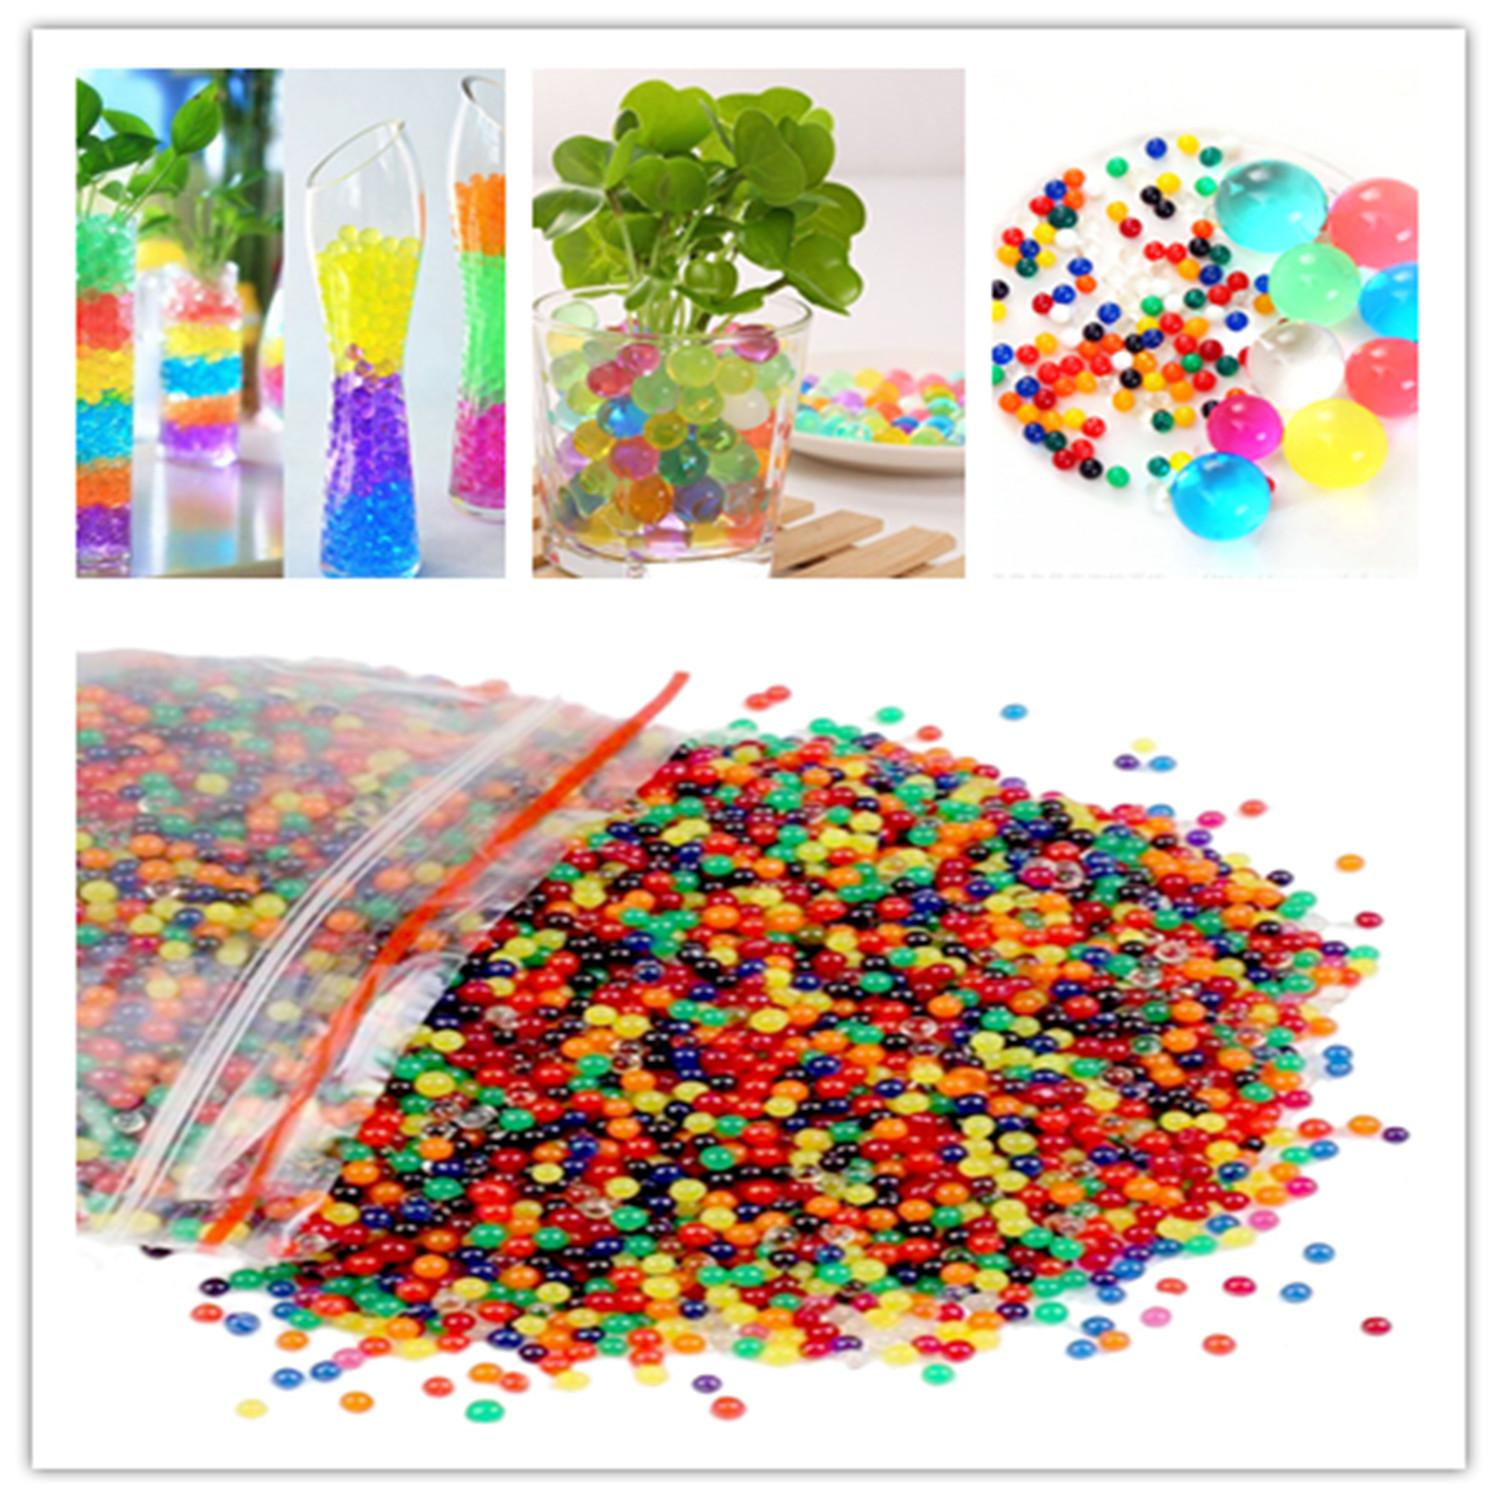 Bulk Of 6000 Beads 100G Mixed Water Beads Water Growing